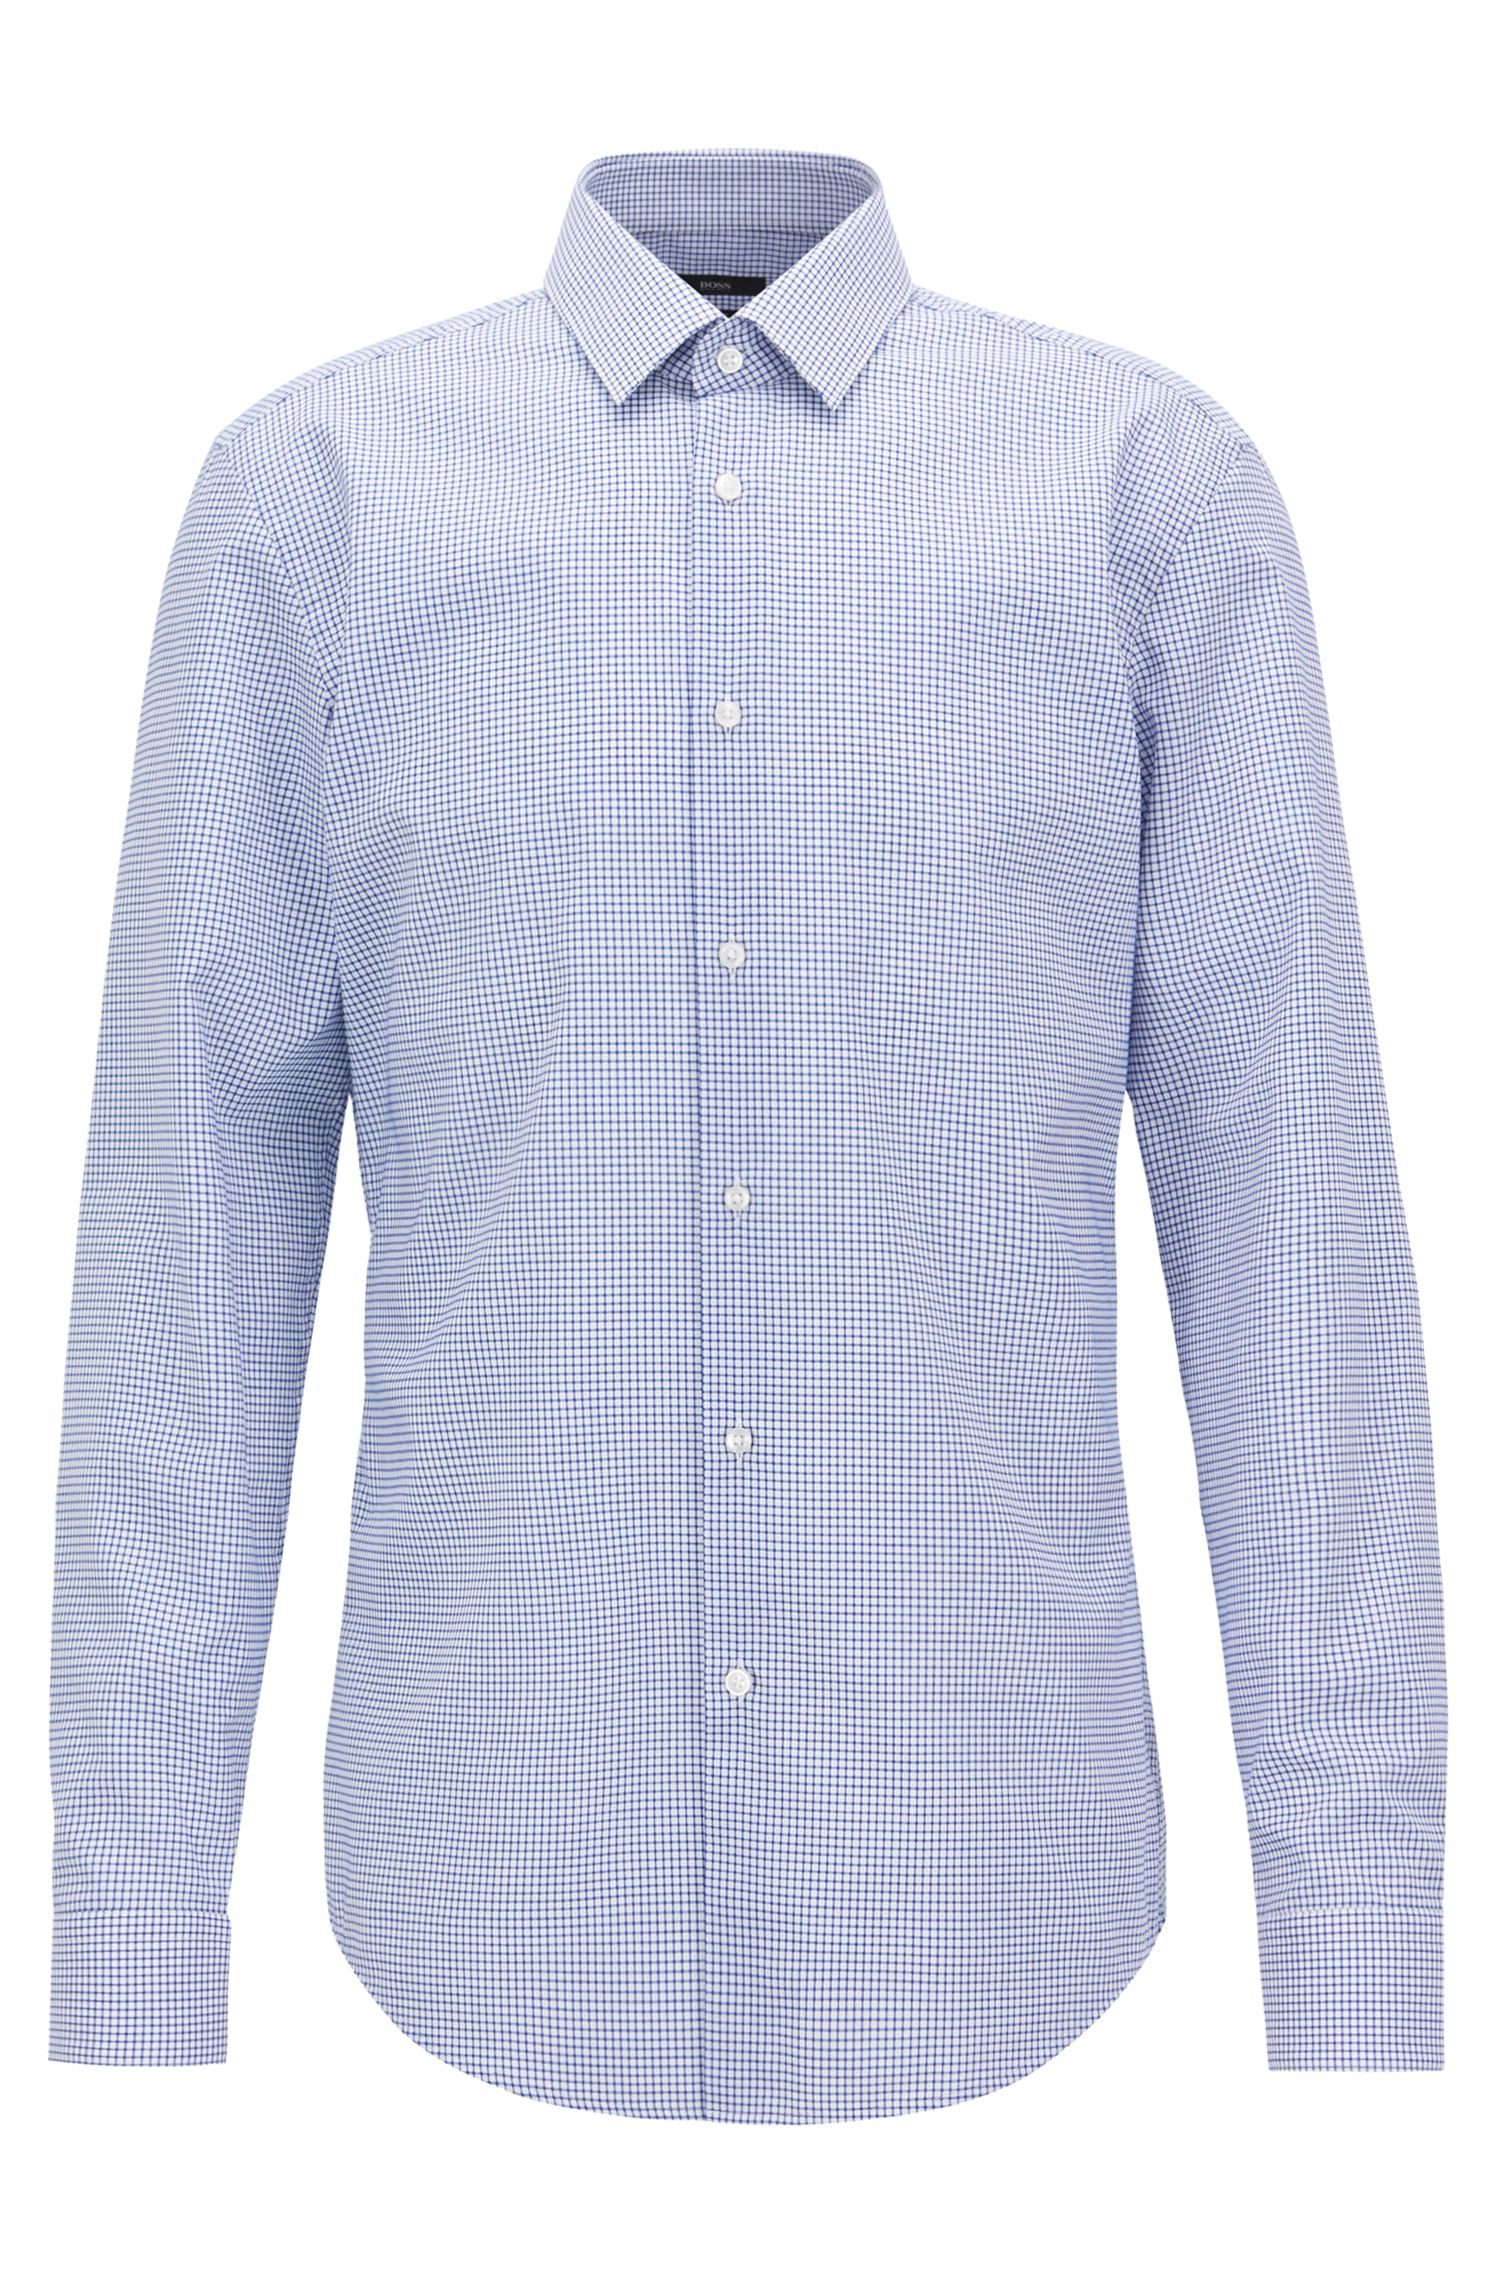 Slim-fit shirt in easy-iron checked cotton poplin, Open Blue